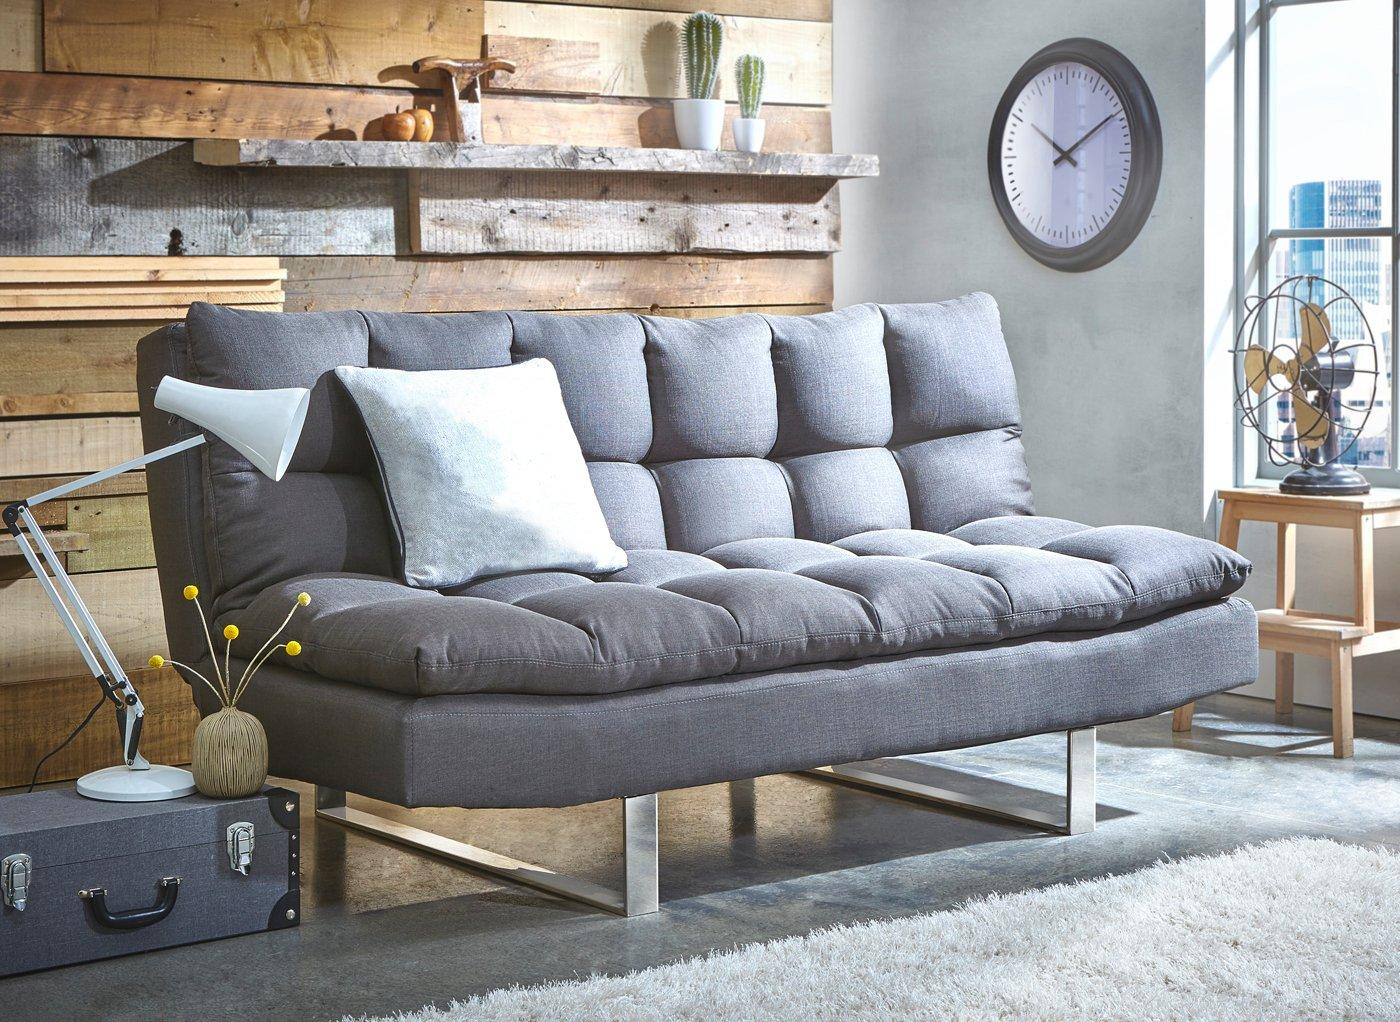 sofa bed in sale istikbal fantasy sleeper save on beds today online or store dreams ohio